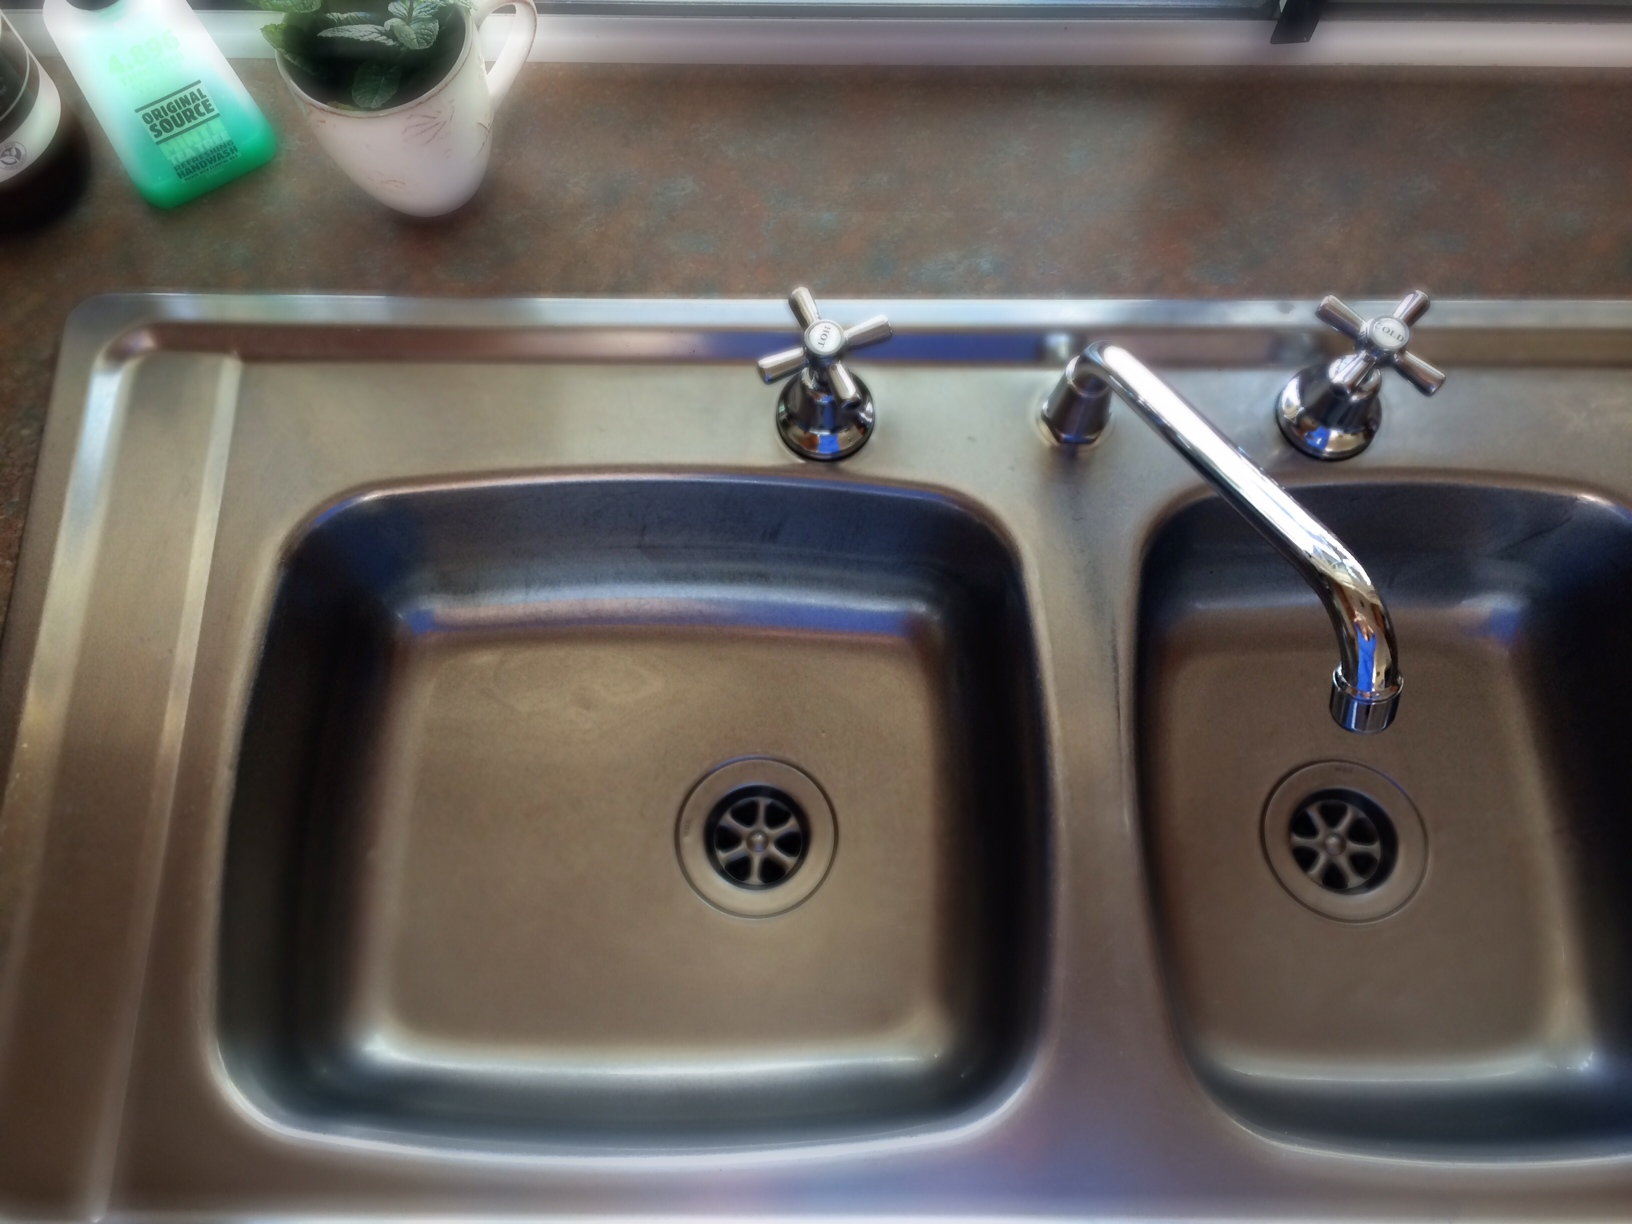 How to clean your kitchen sink without harsh chemicals cooking for busy mums for How to clean your bathroom drain